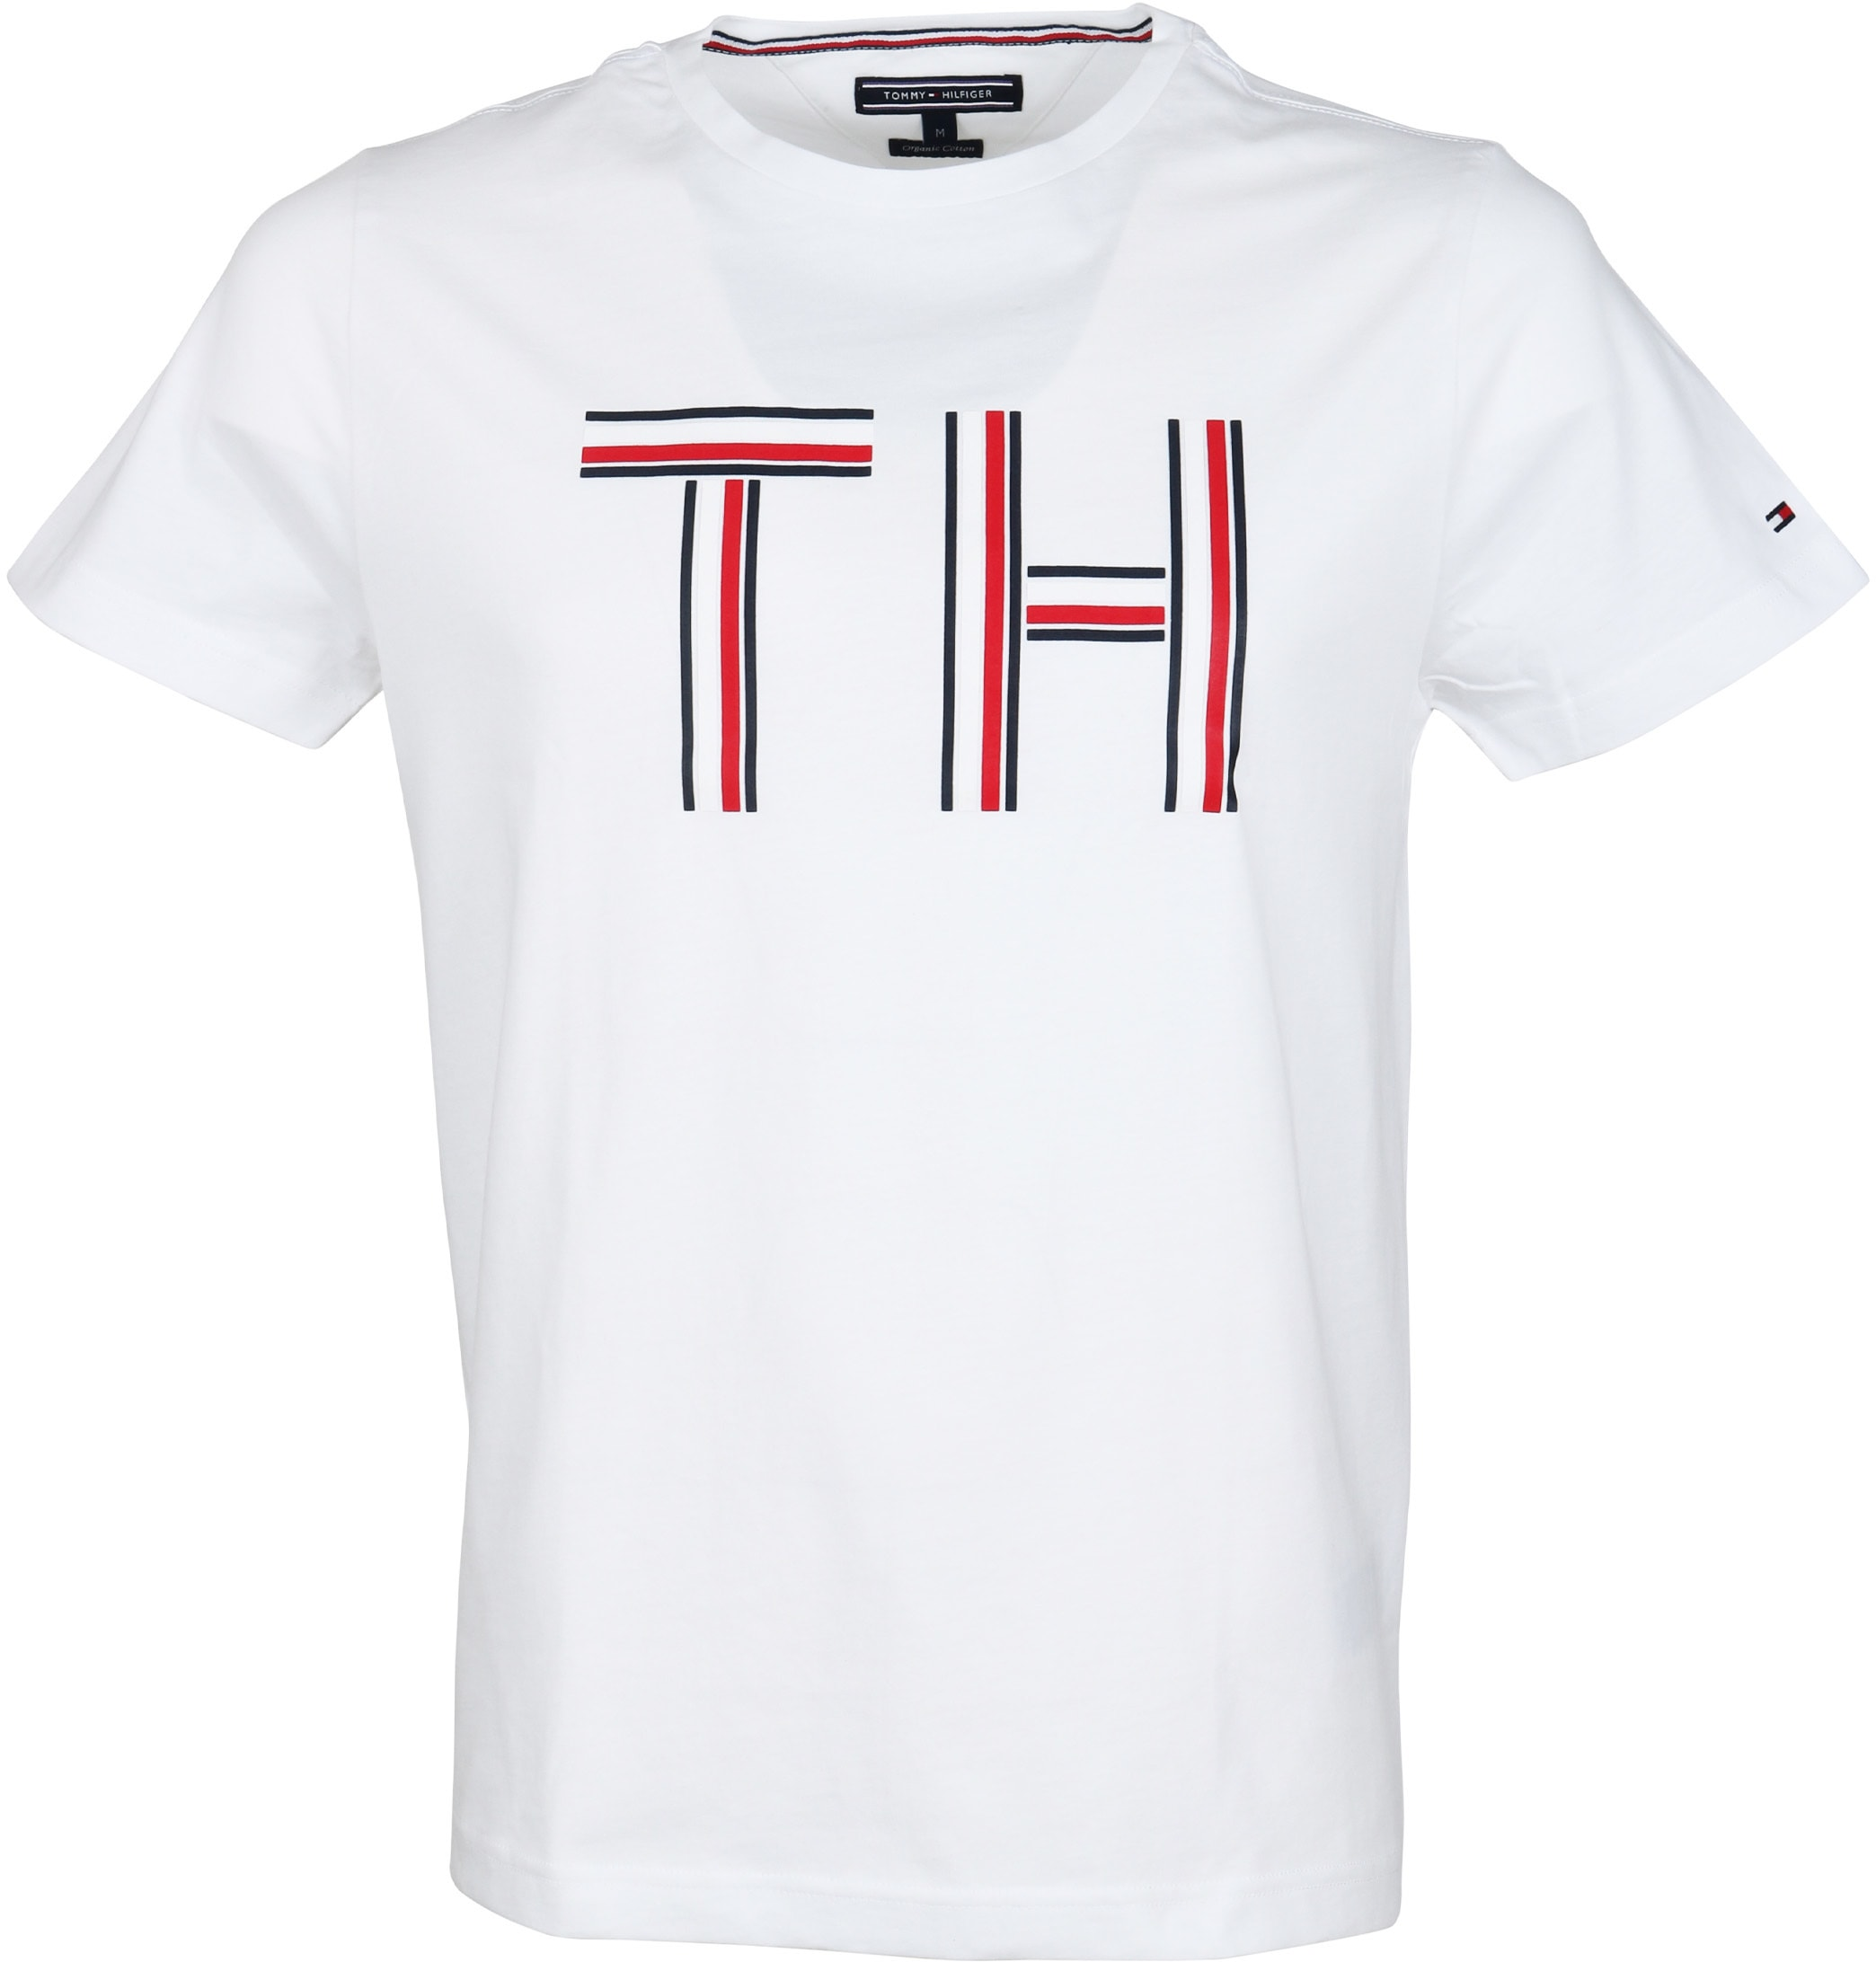 tommy hilfiger t shirt logo wit online bestellen suitable. Black Bedroom Furniture Sets. Home Design Ideas